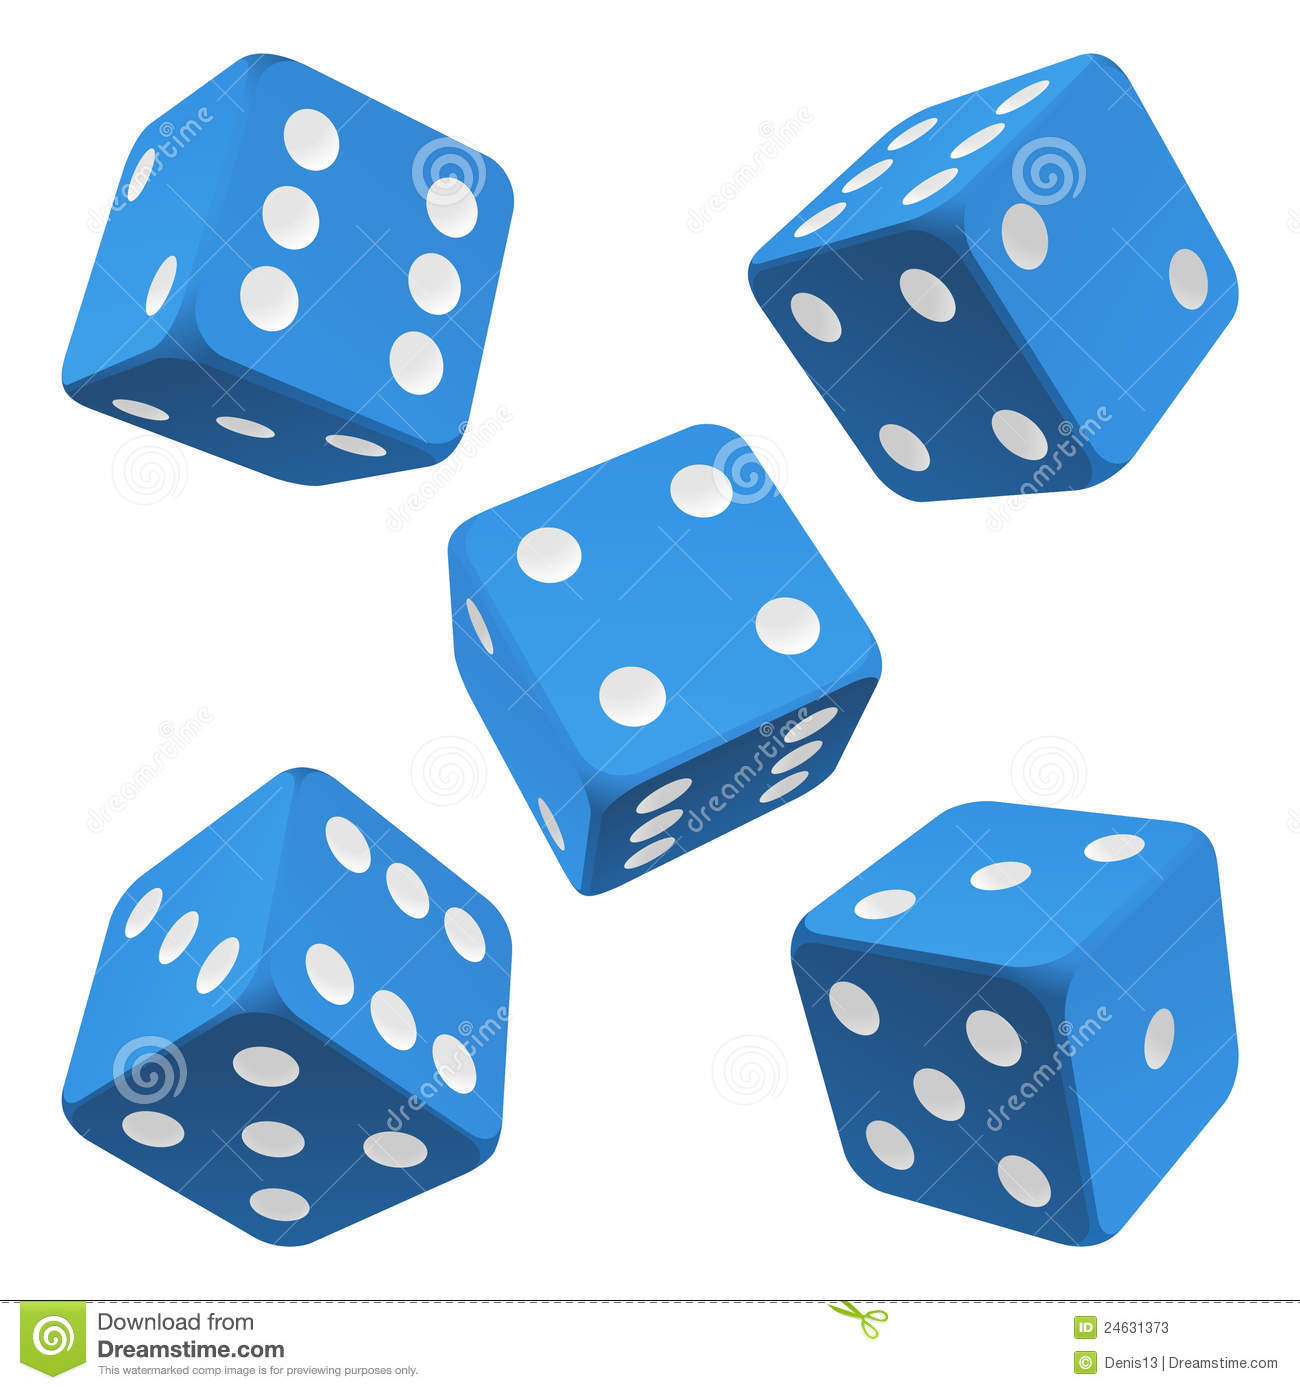 how to set up a dice rolling in discord